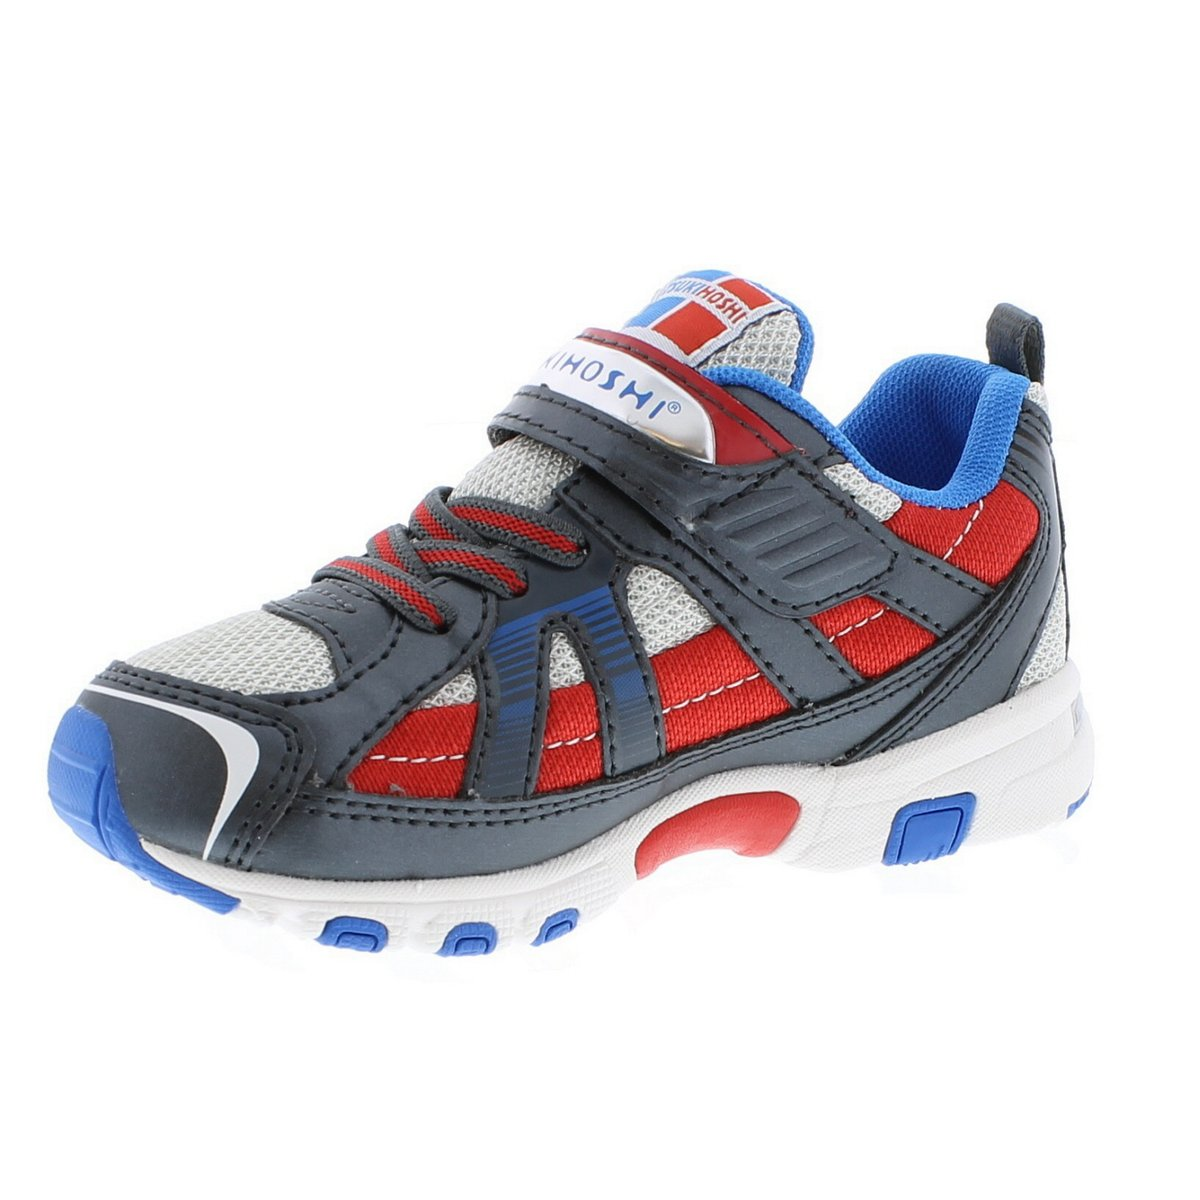 Child Tsukihoshi Storm Sneaker in Red/Gray from the front view